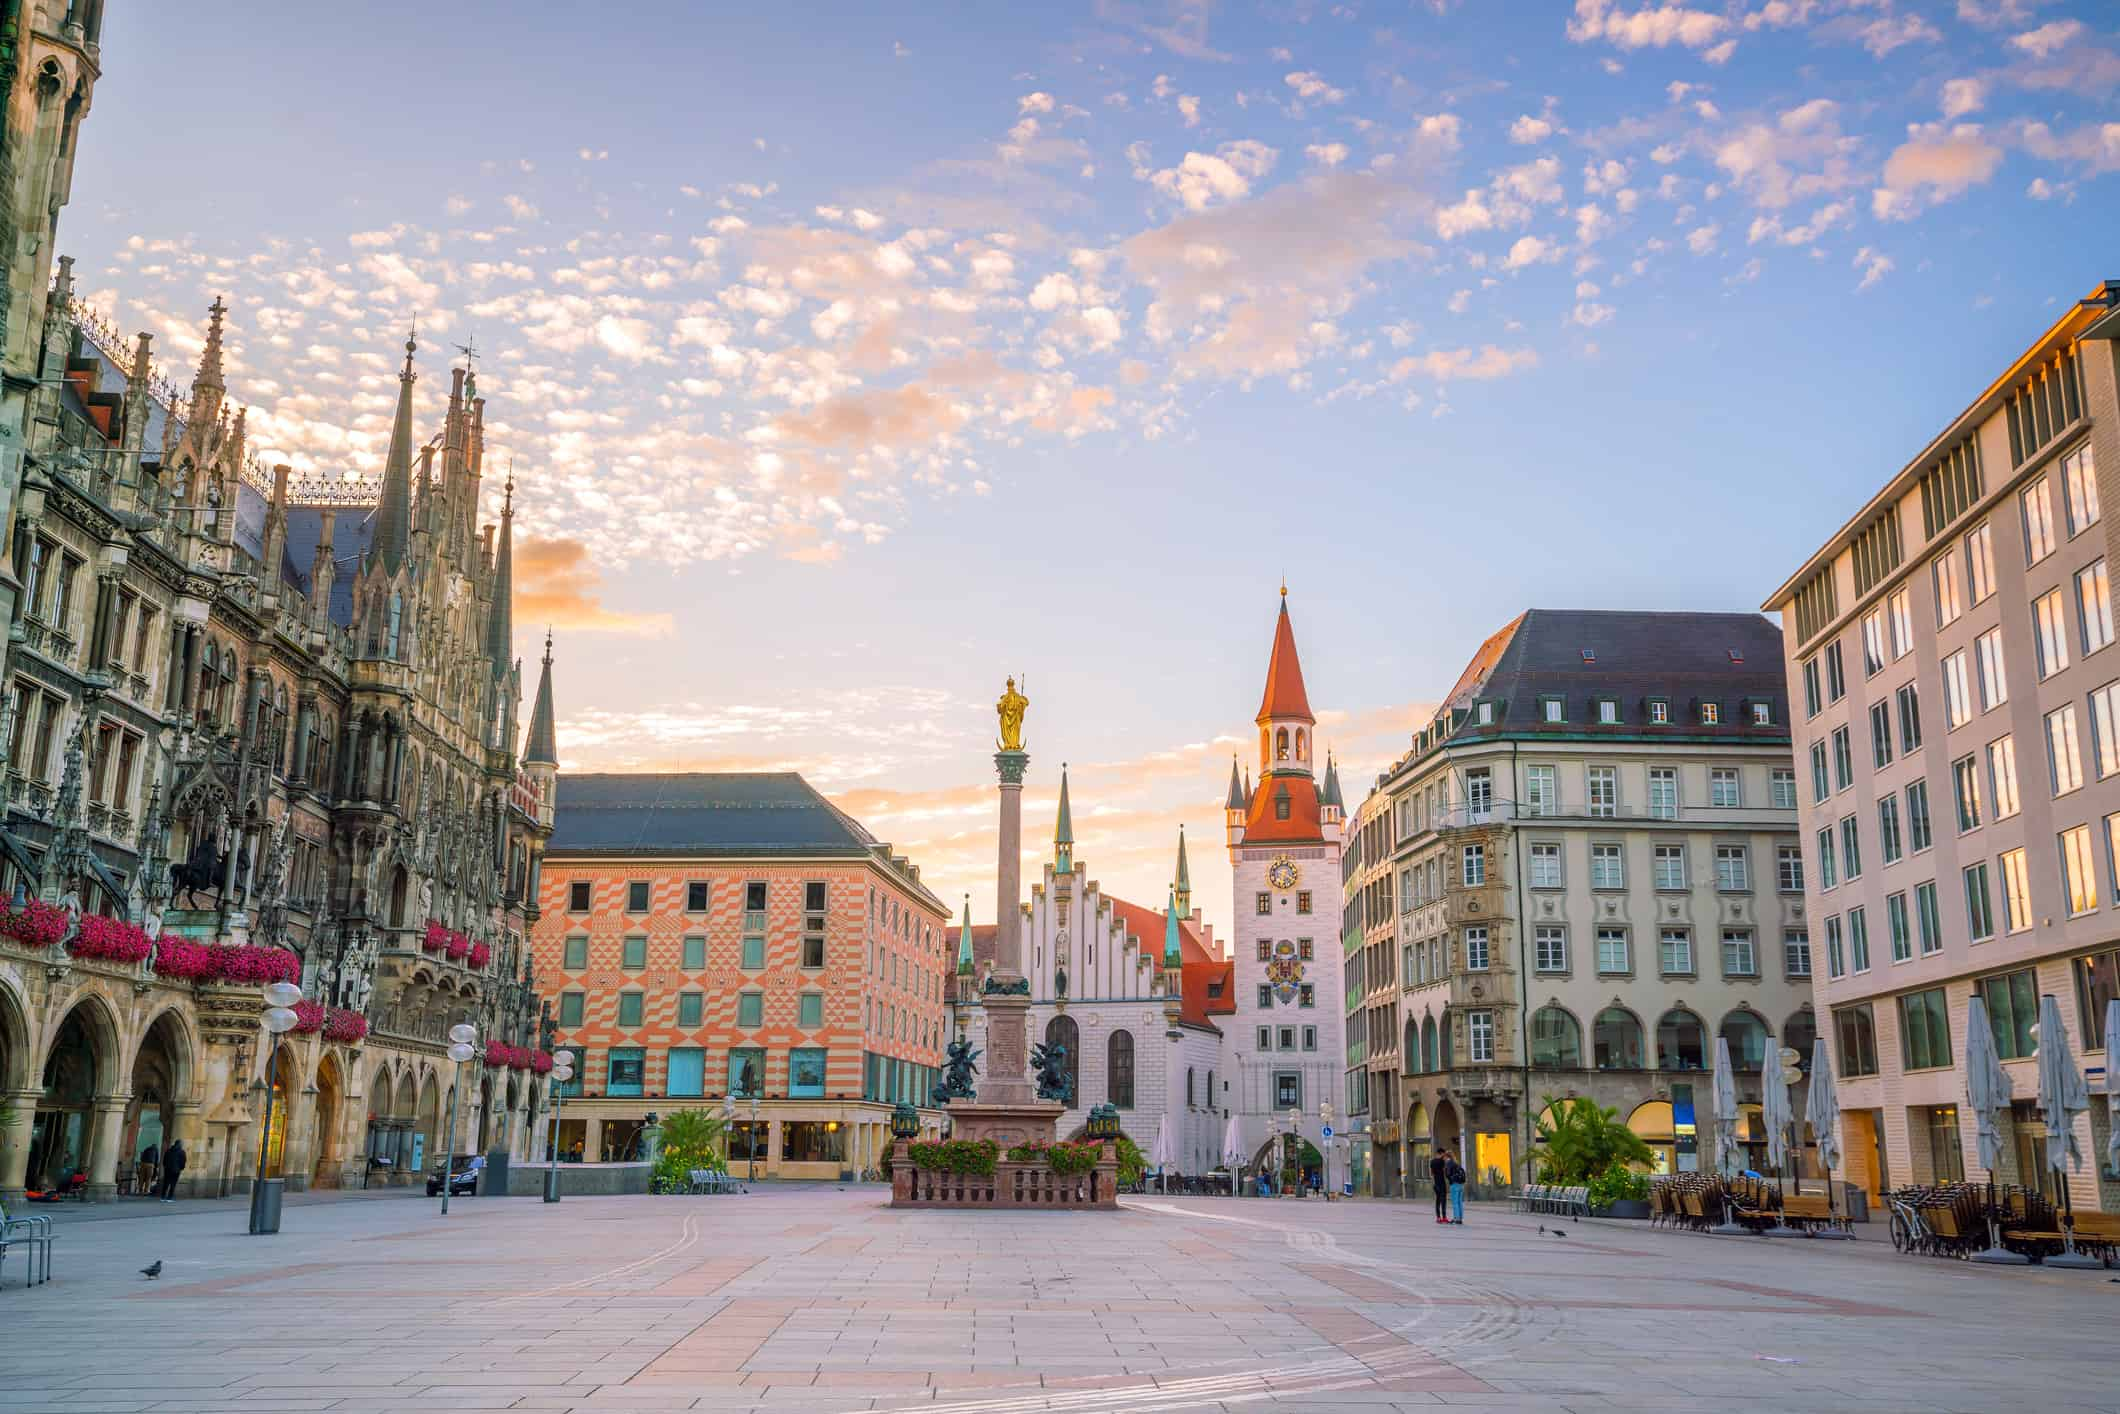 Old Town Hall at Marienplatz Square in Munich